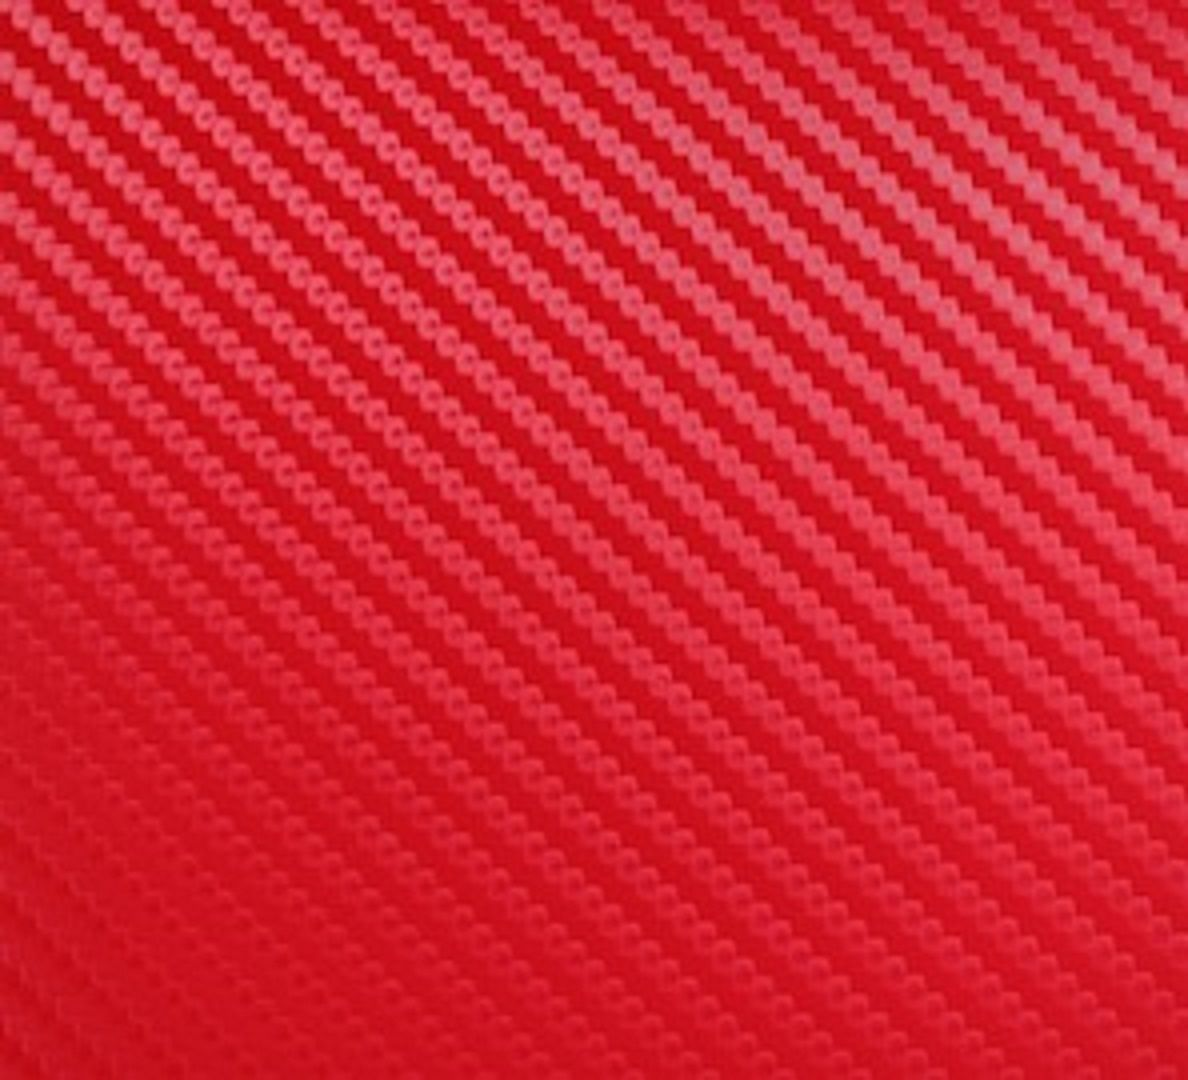 Download Red Carbon Fiber Wallpaper Gallery